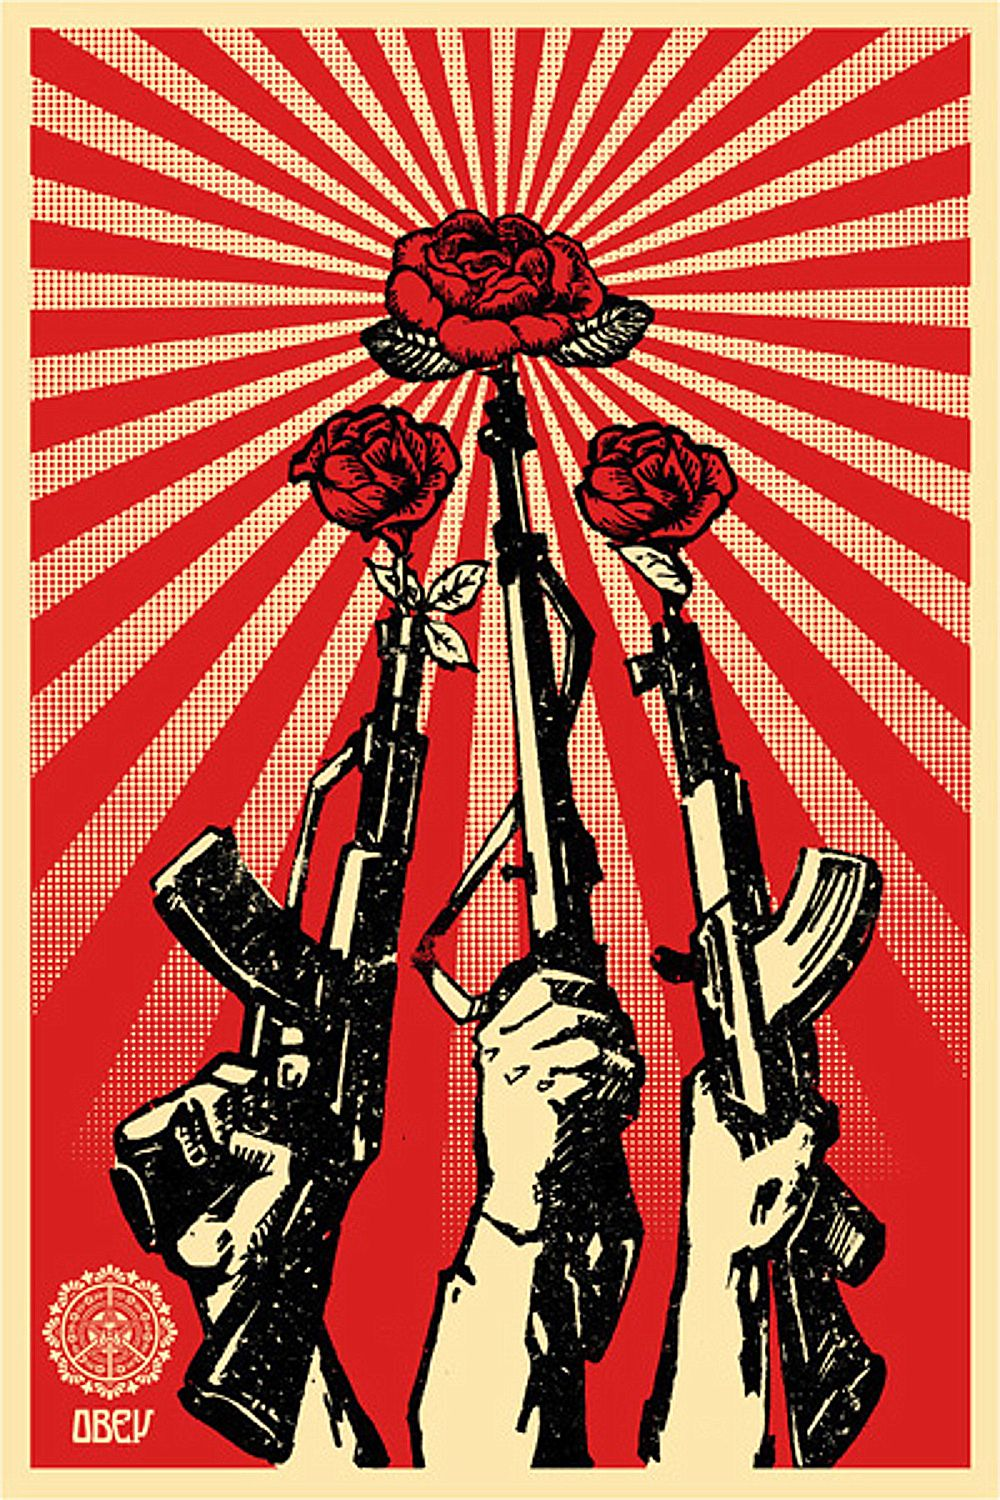 Obey Flower Wallpapers On Wallpaperdog